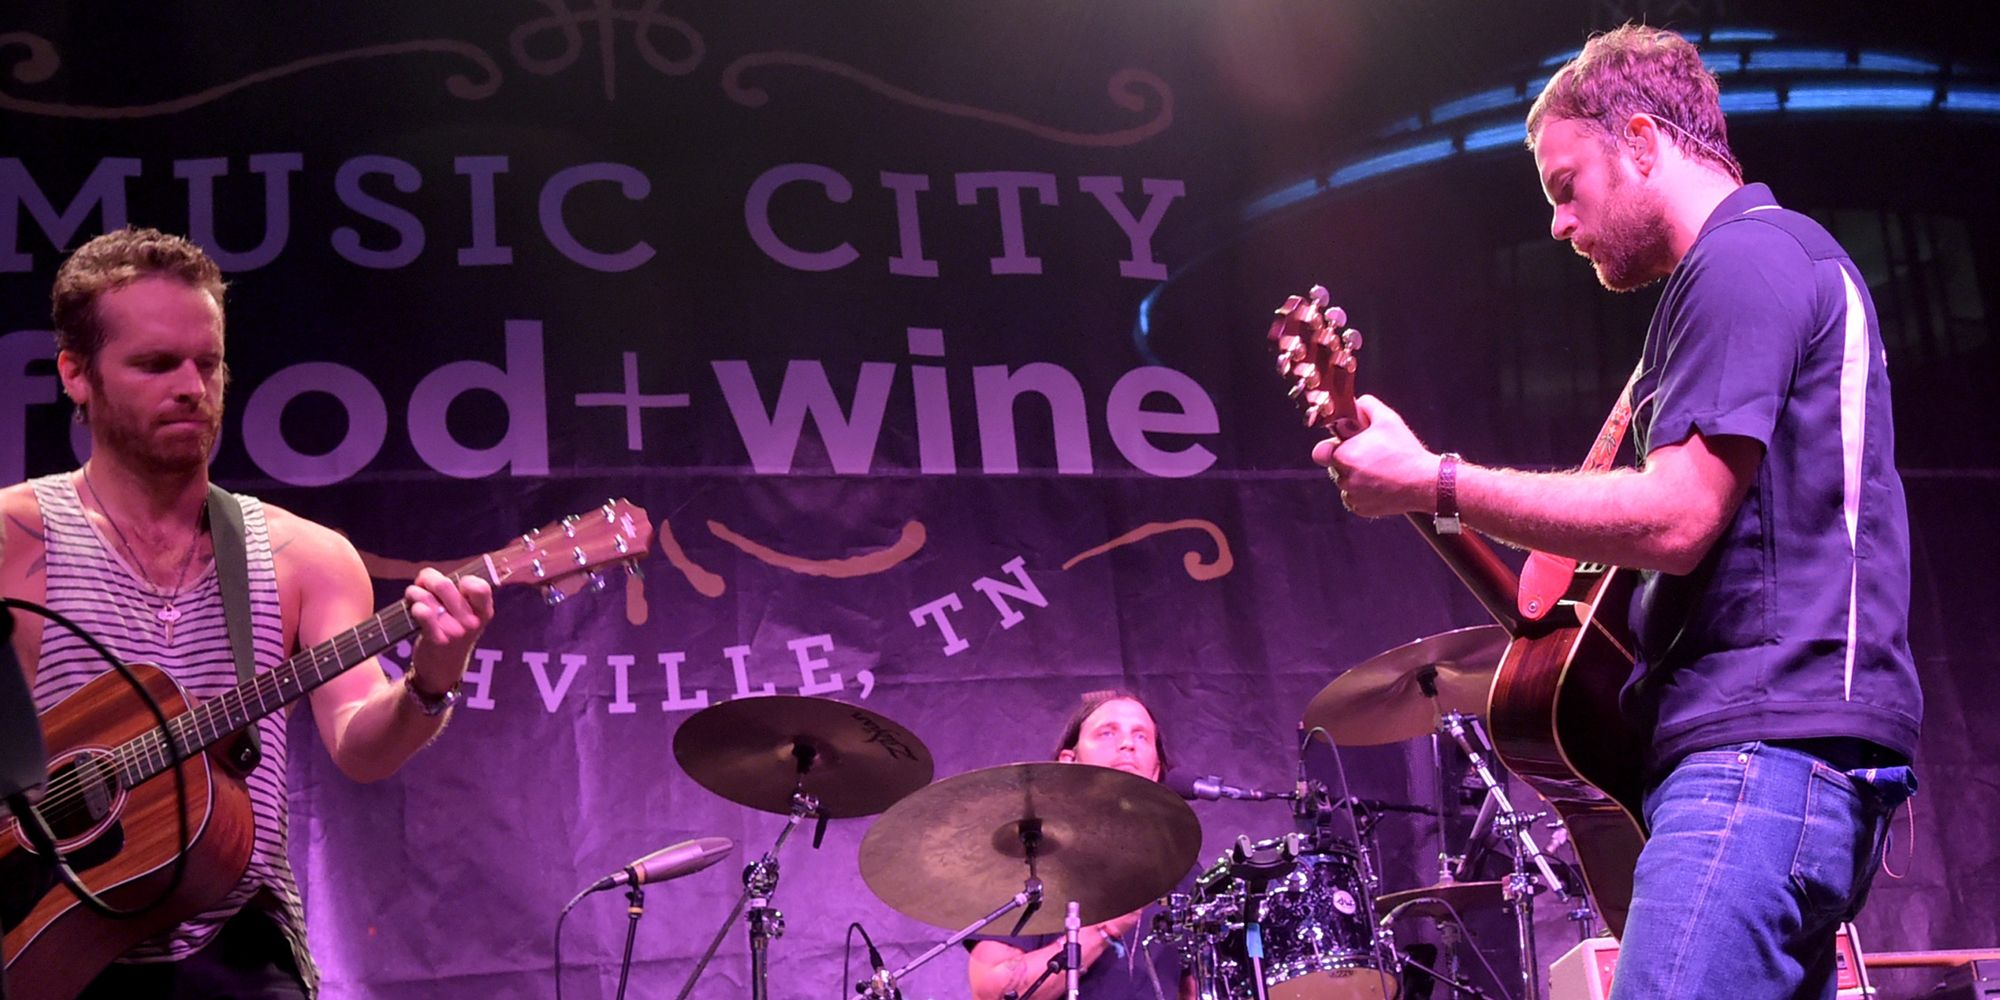 Music City Food + Wine Festival — Nashville, Tennessee